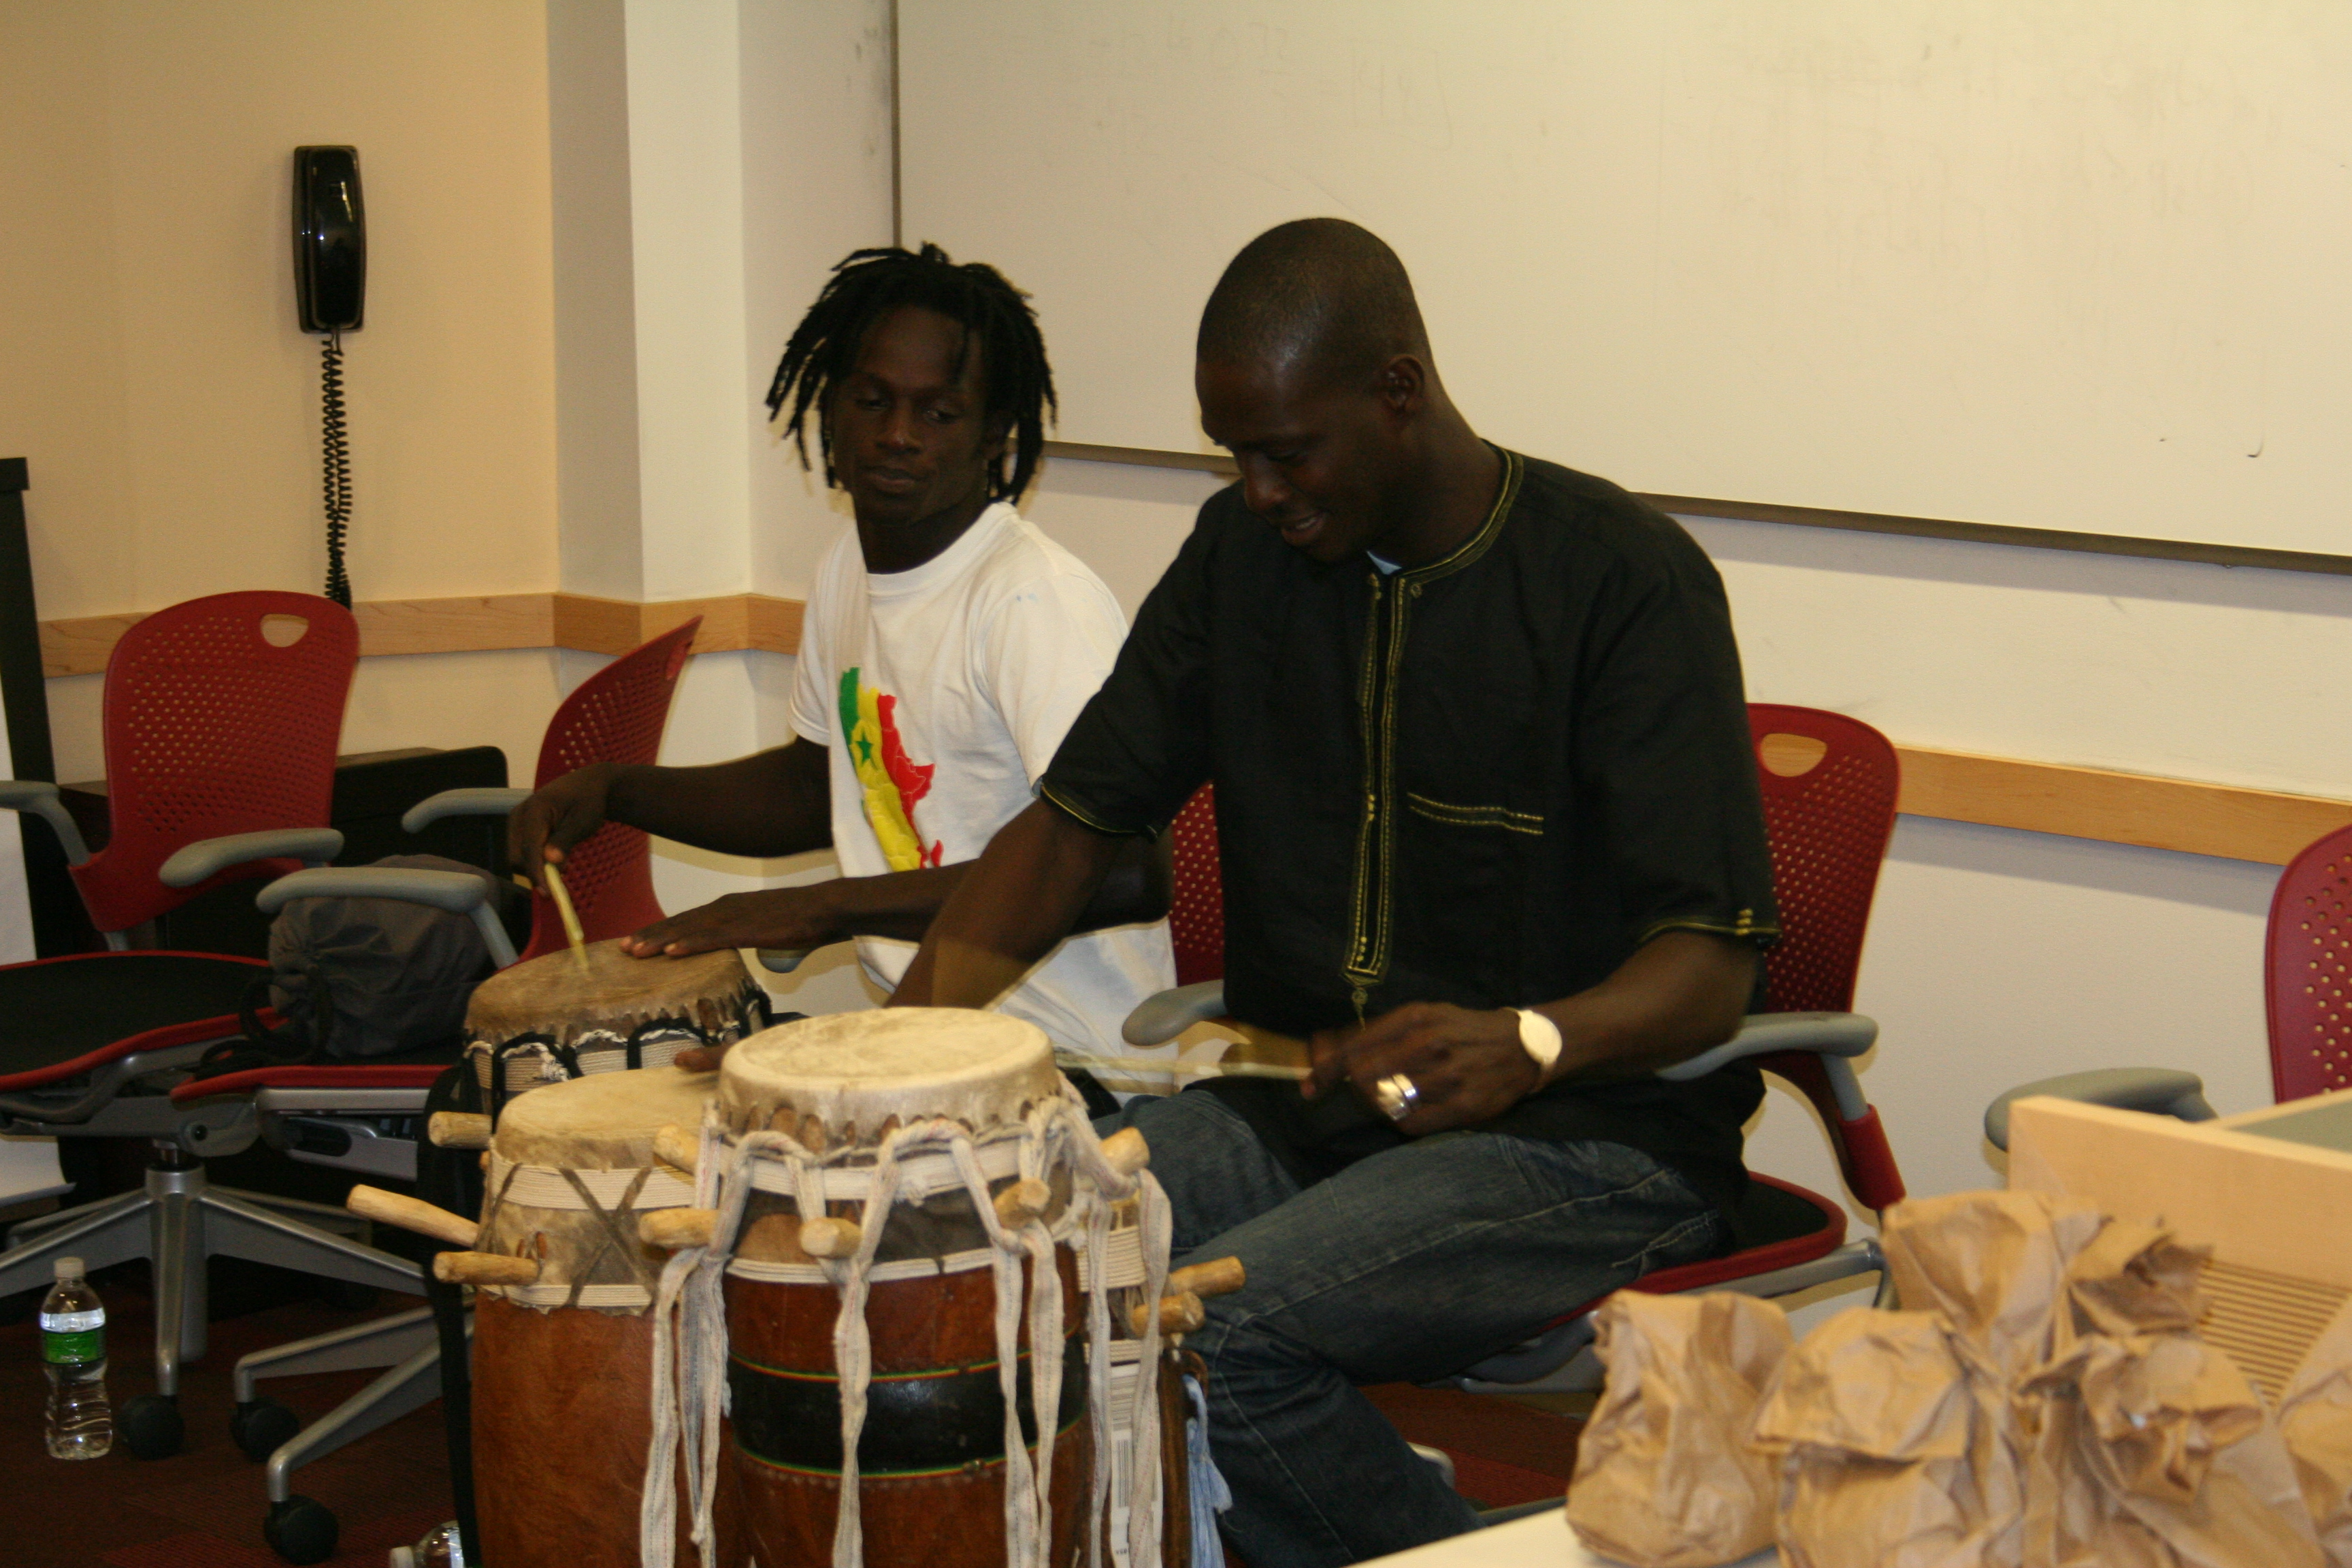 Moustapha Faye and Malick Ngom demonstrate the sabar drum and its rhythms to Suffolk University.